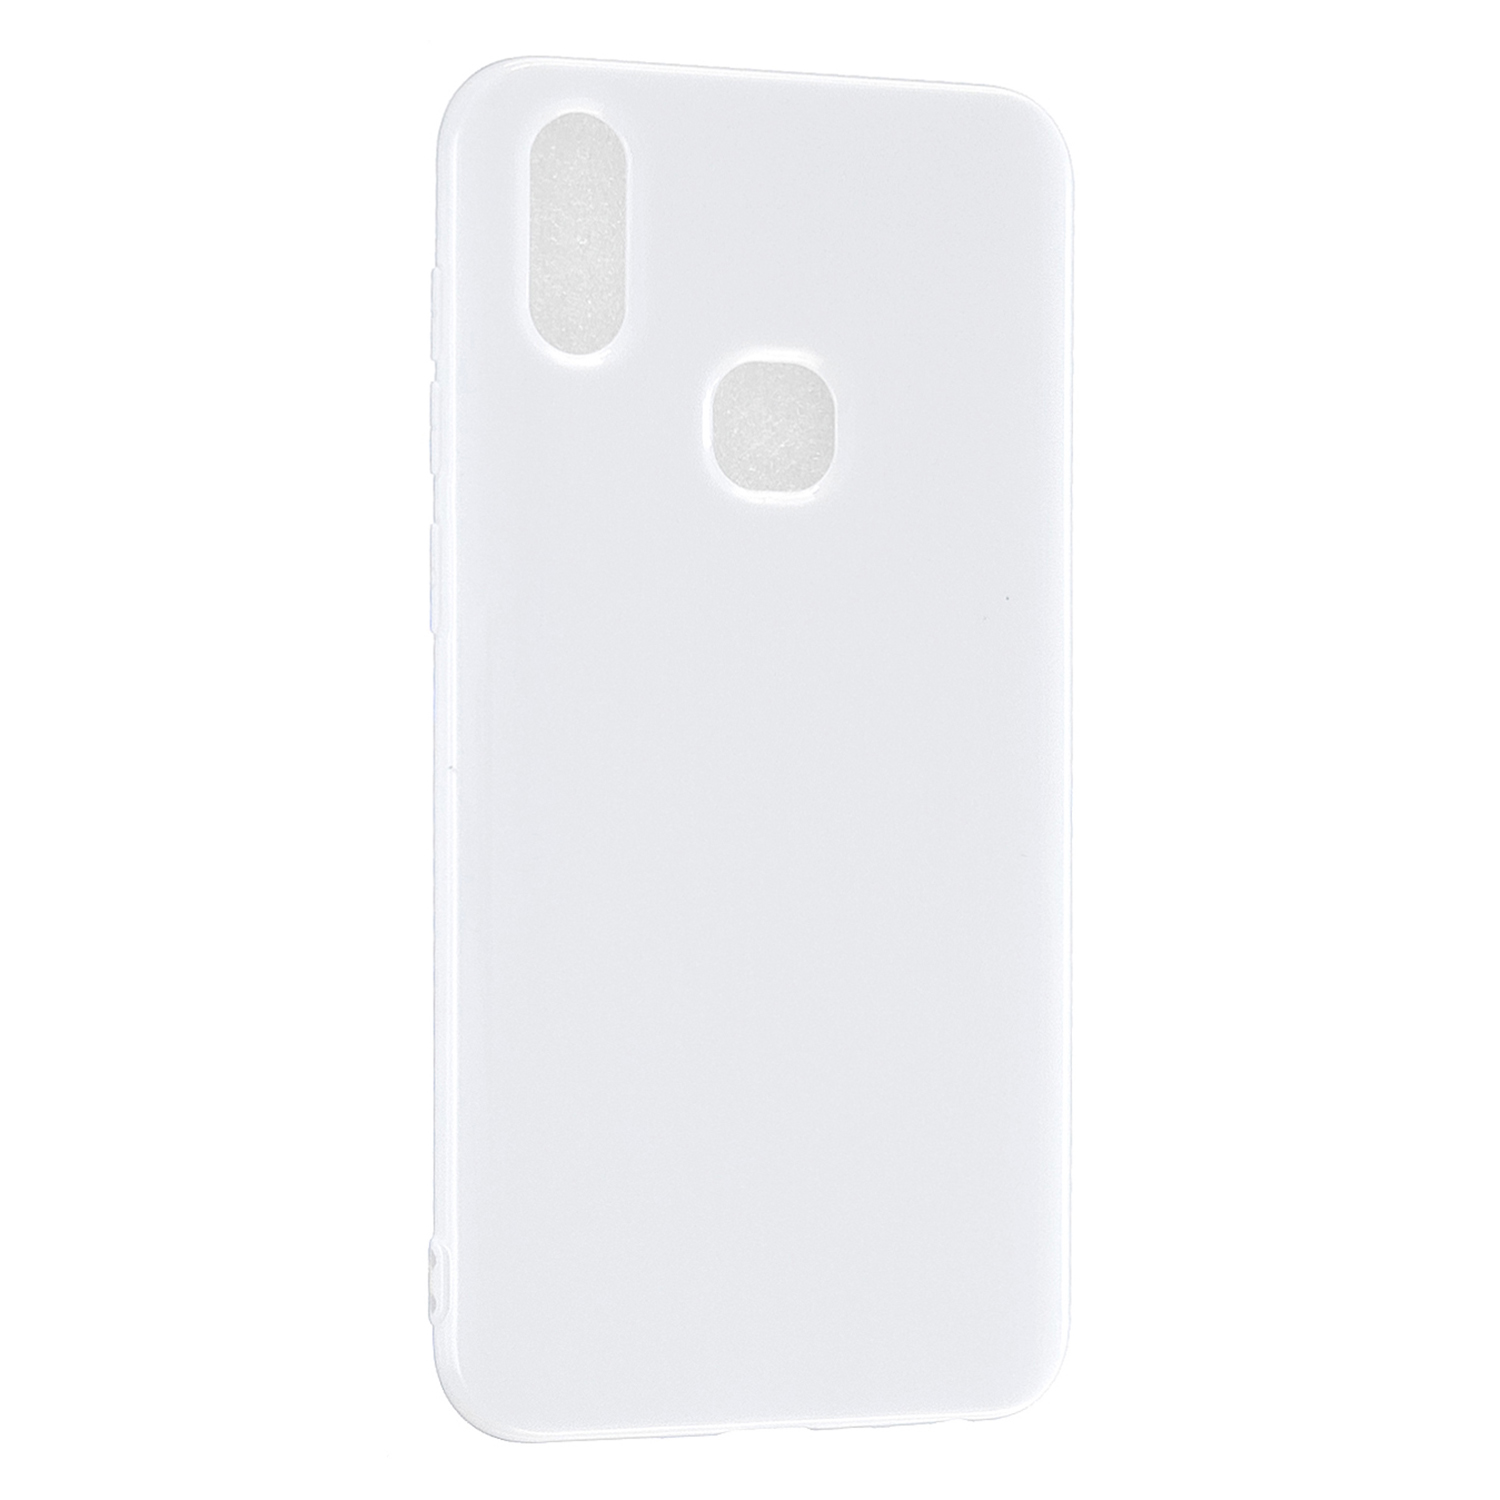 for VIVO Y17/Y3 / Y91/Y95/Y93 Thicken 2.0mm TPU Back Cover Cellphone Case Shell white